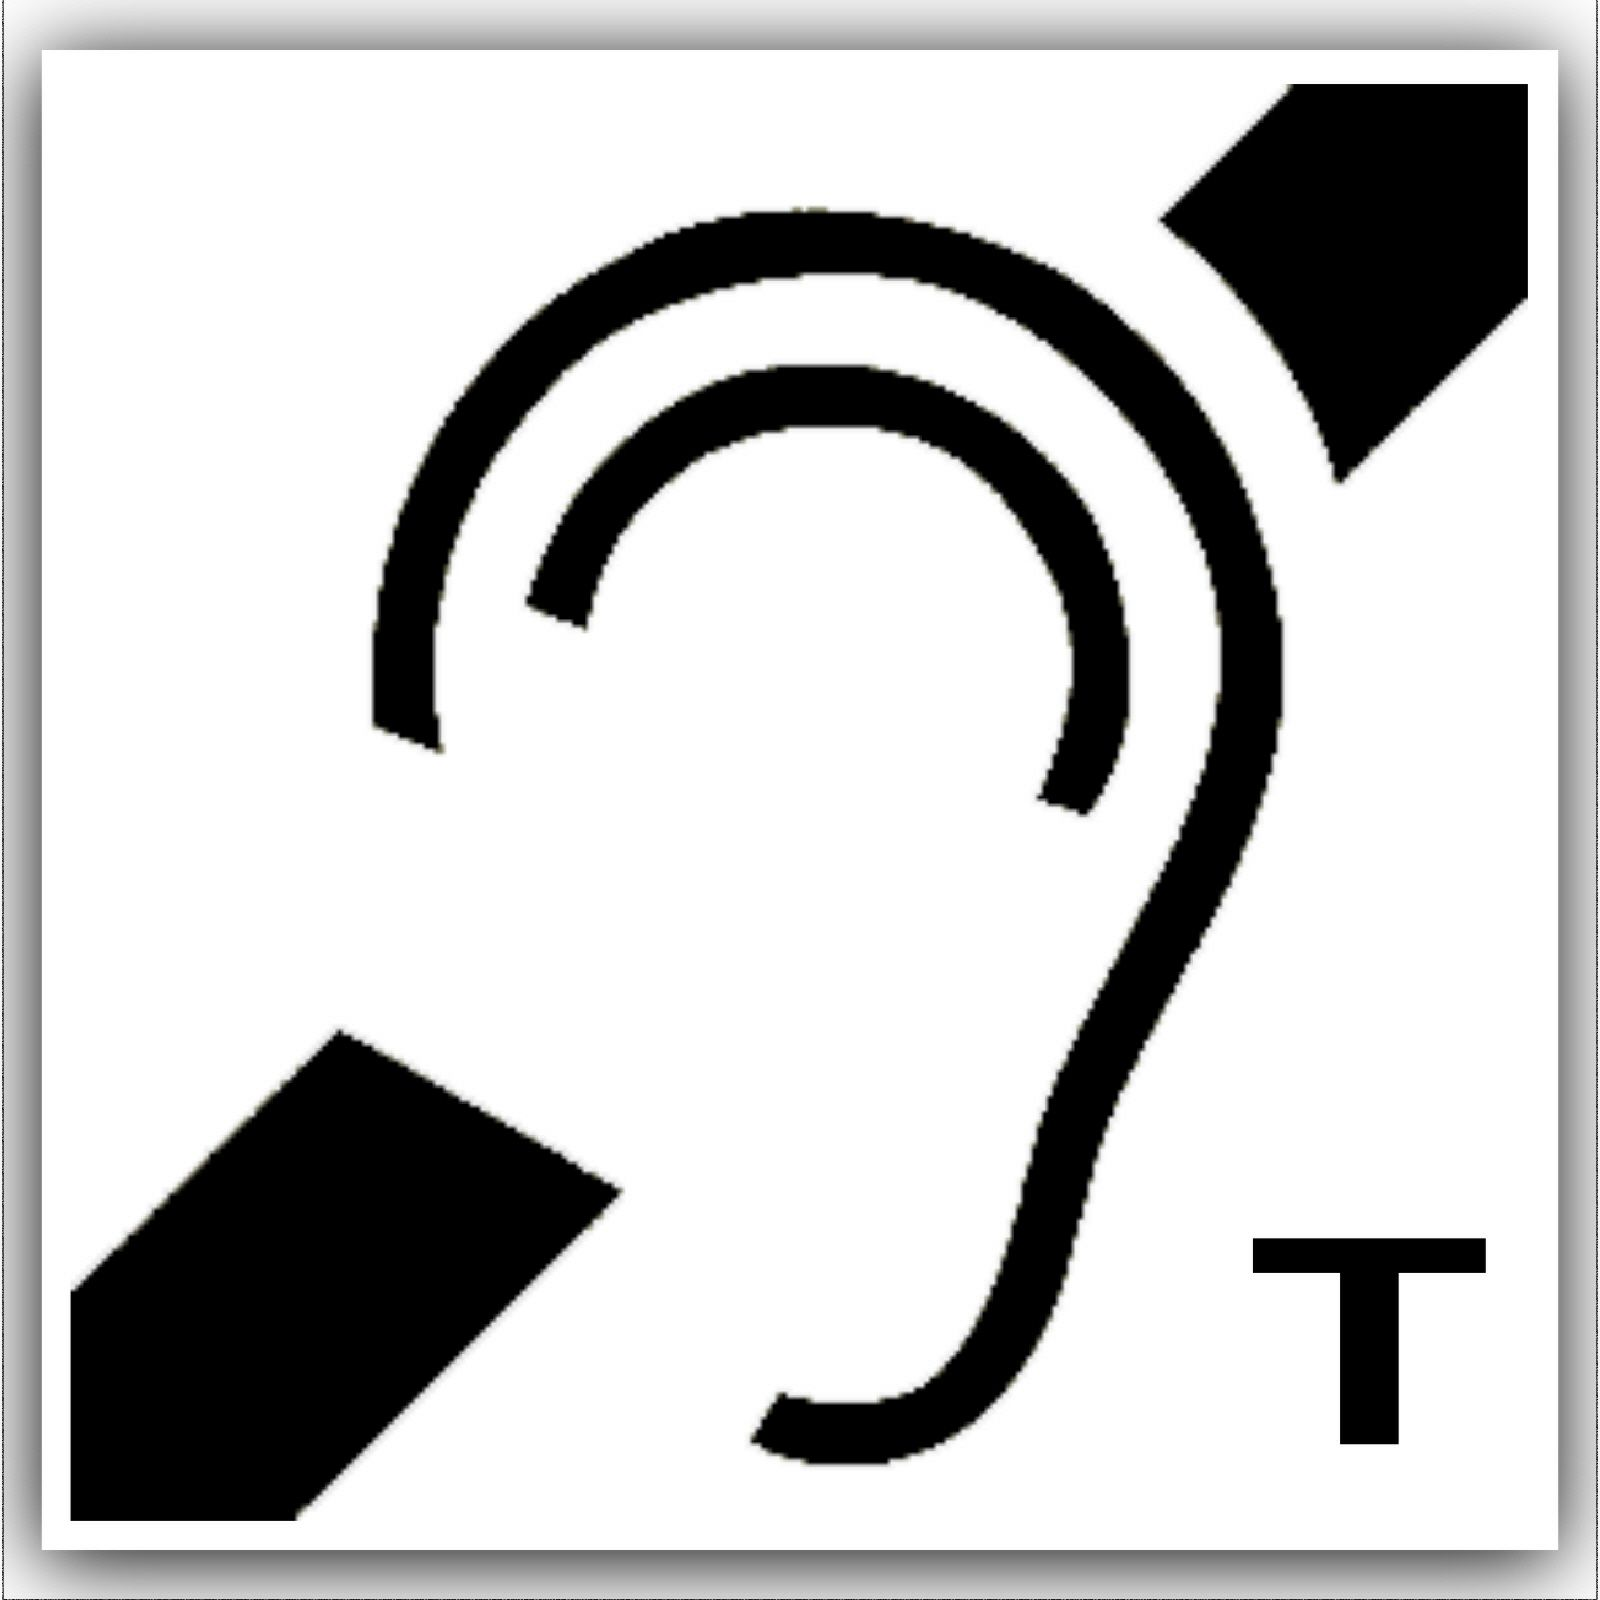 1 X Hard Of Hearing Induction Loop Stickers With T Symbol Self